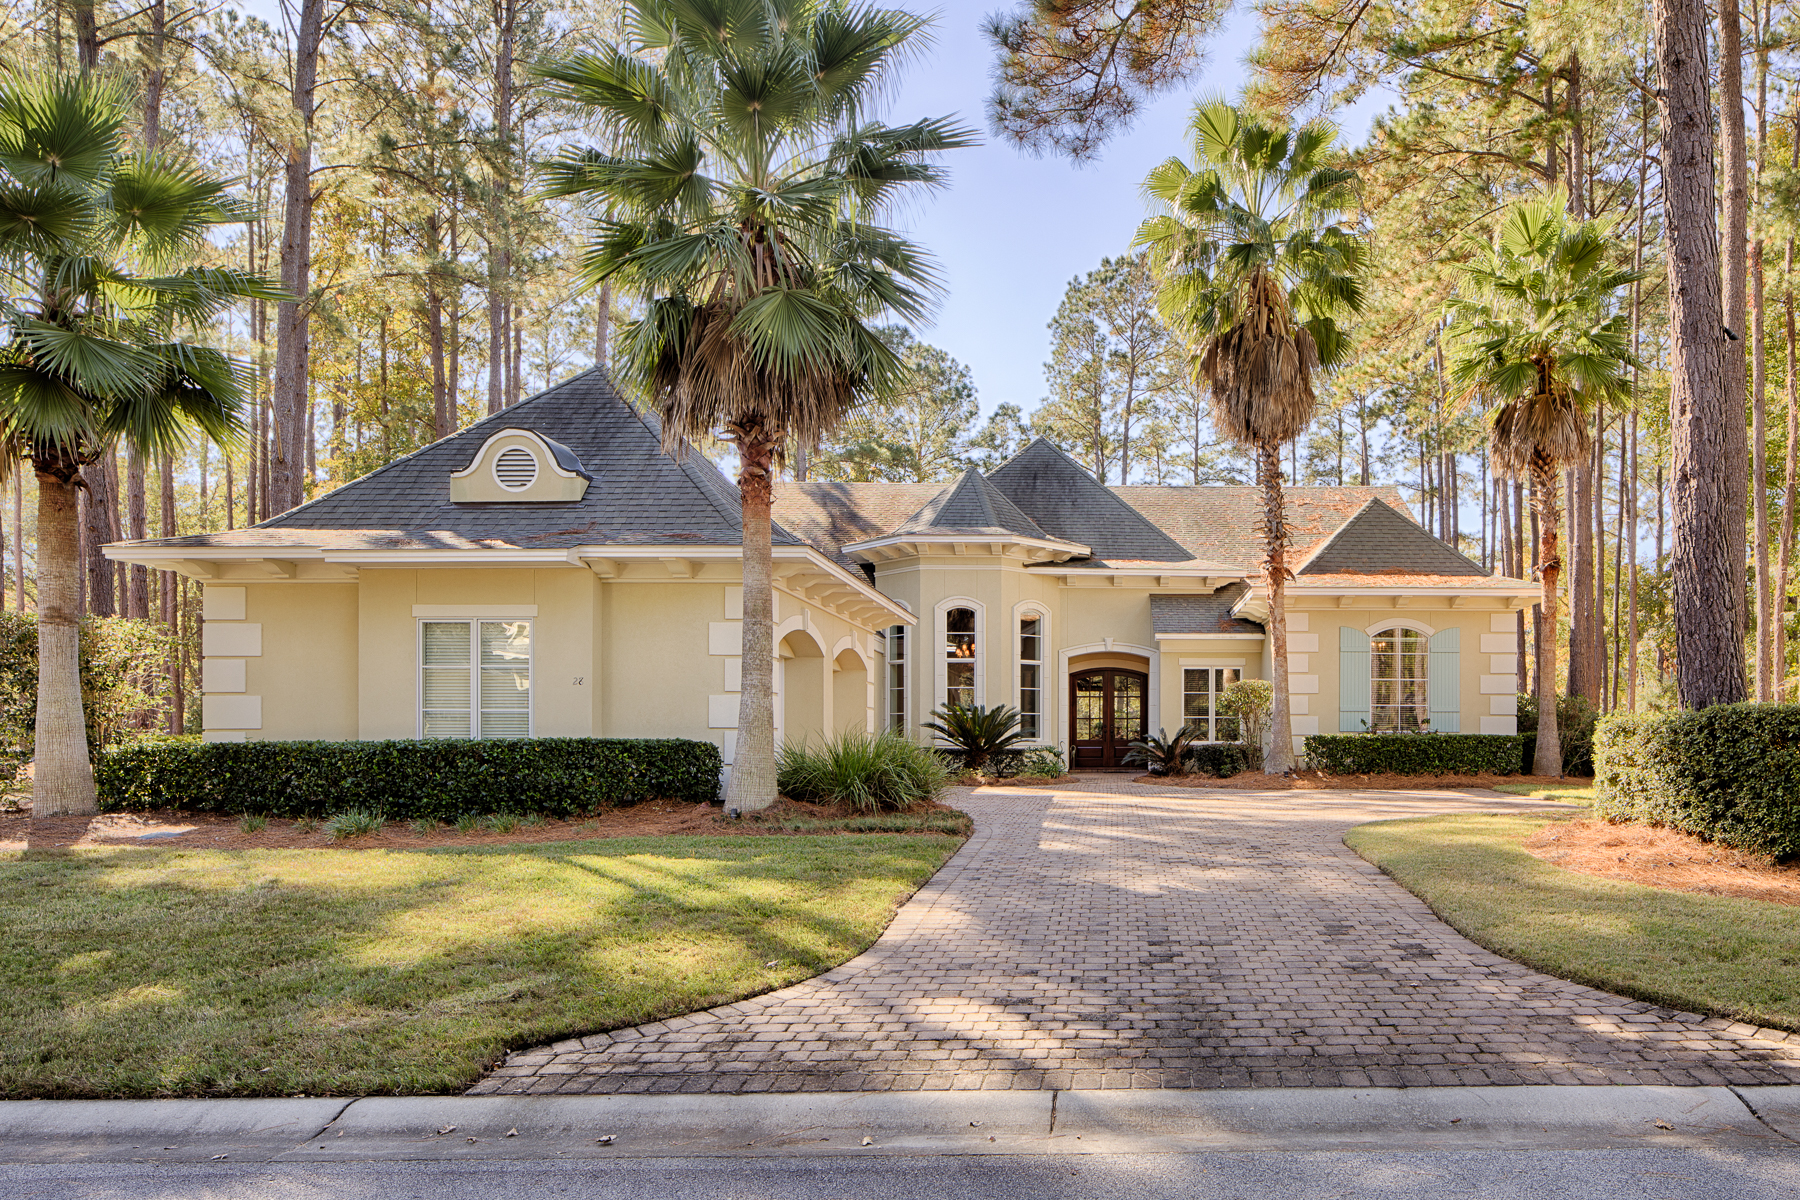 Single Family Homes for Active at 28 Bellereve Drive Okatie, South Carolina 29909 United States